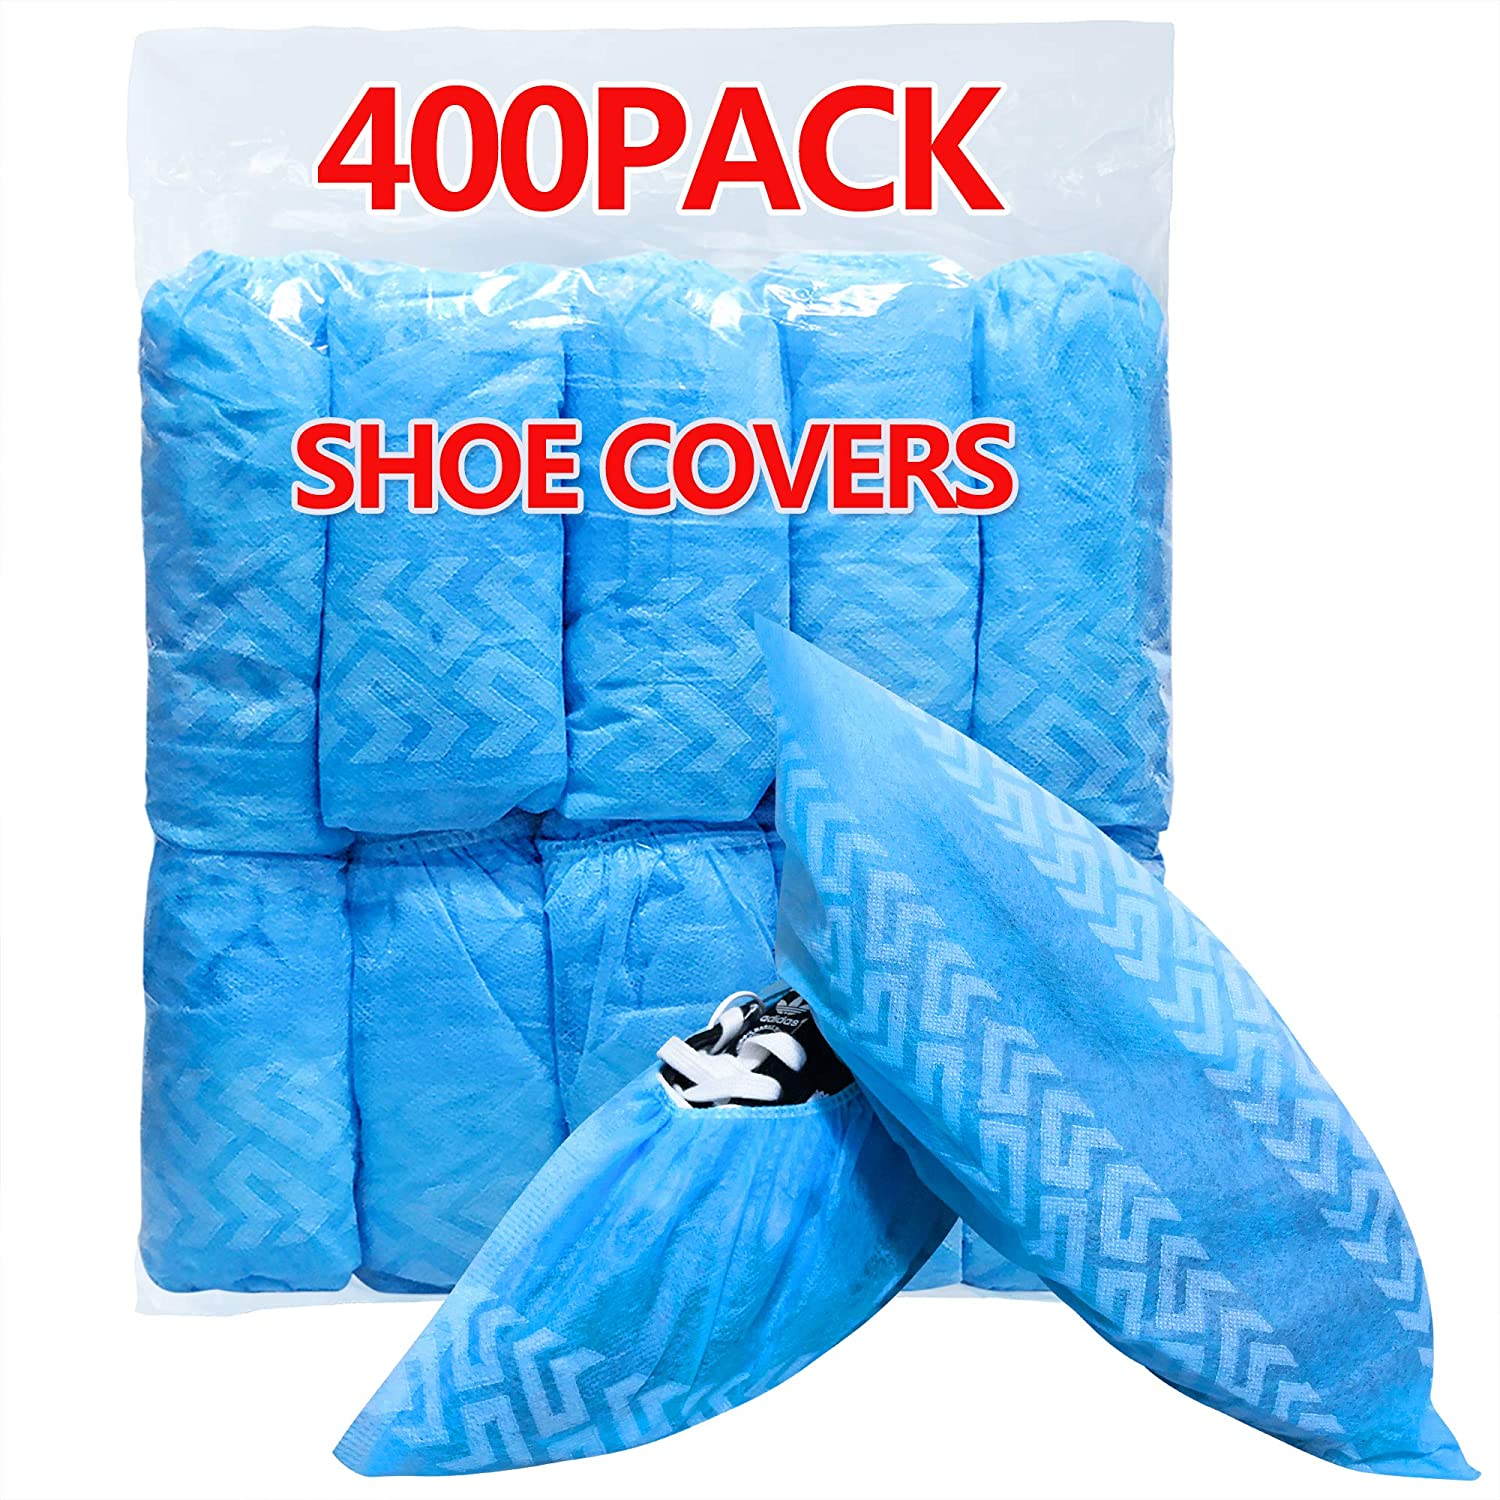 HUADYMEET Large special price !! Shoe Covers Disposable XLarge N Waterproof Don't miss the campaign